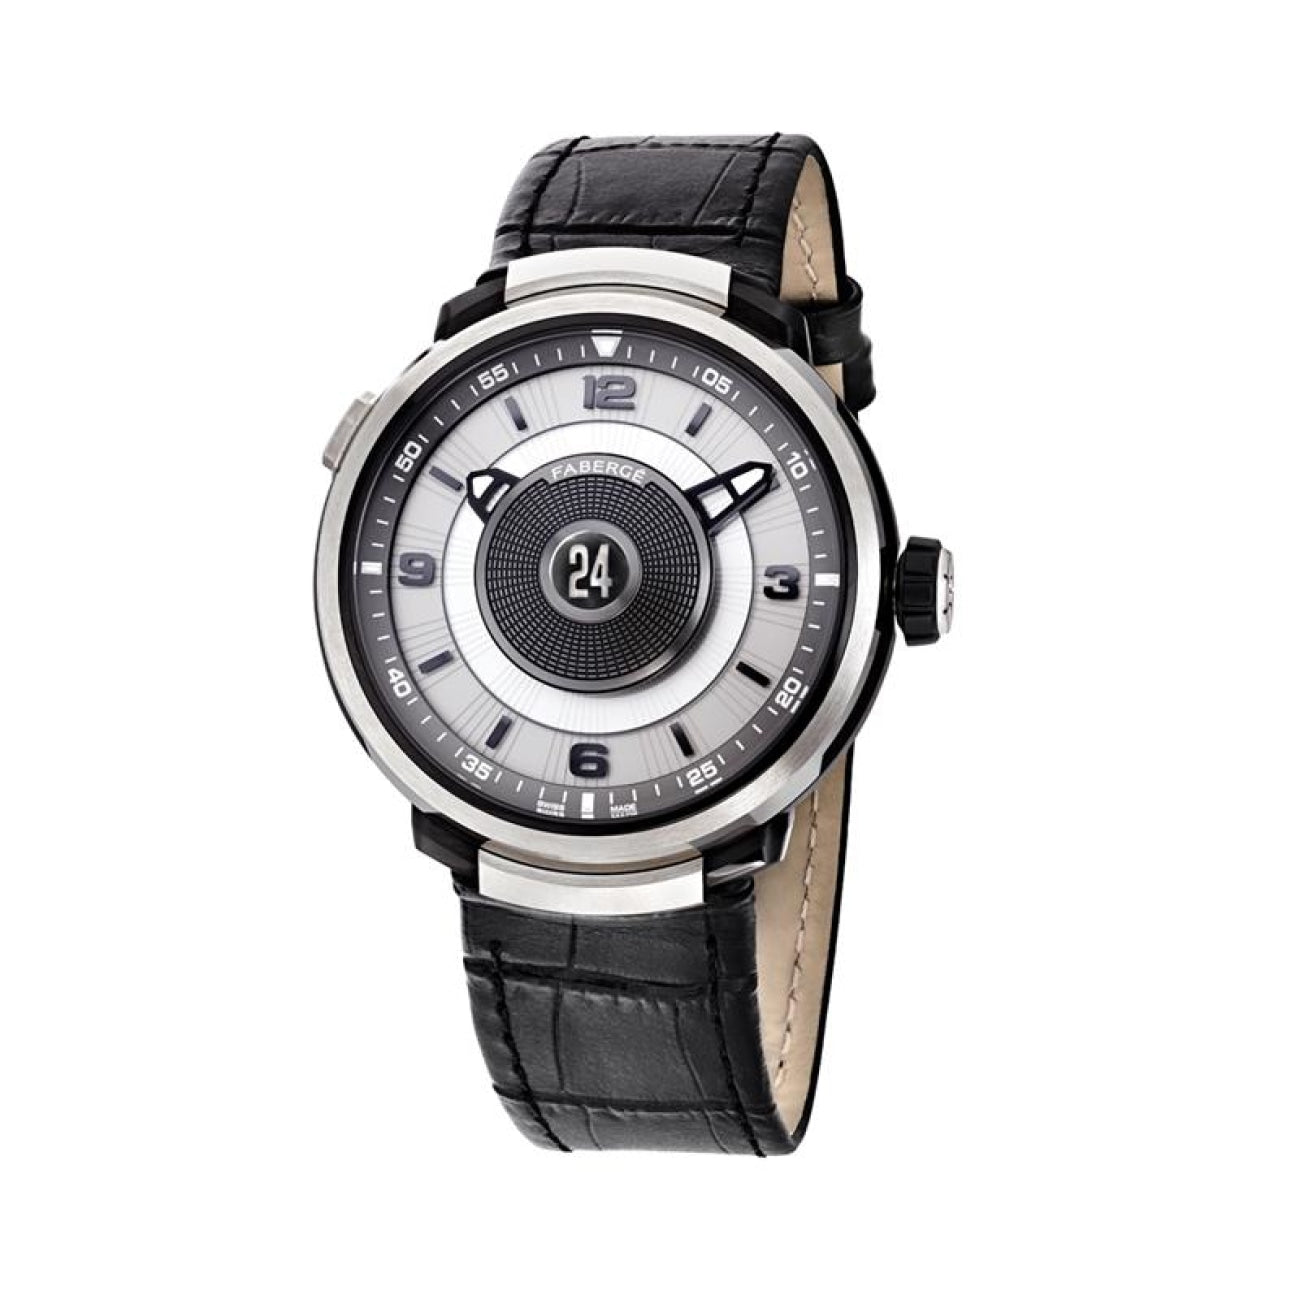 Fabergé Watches - VISIONNAIRE DTZ 18K WHITE GOLD & SAPPHIRE MENS WATCH | Manfredi Jewels